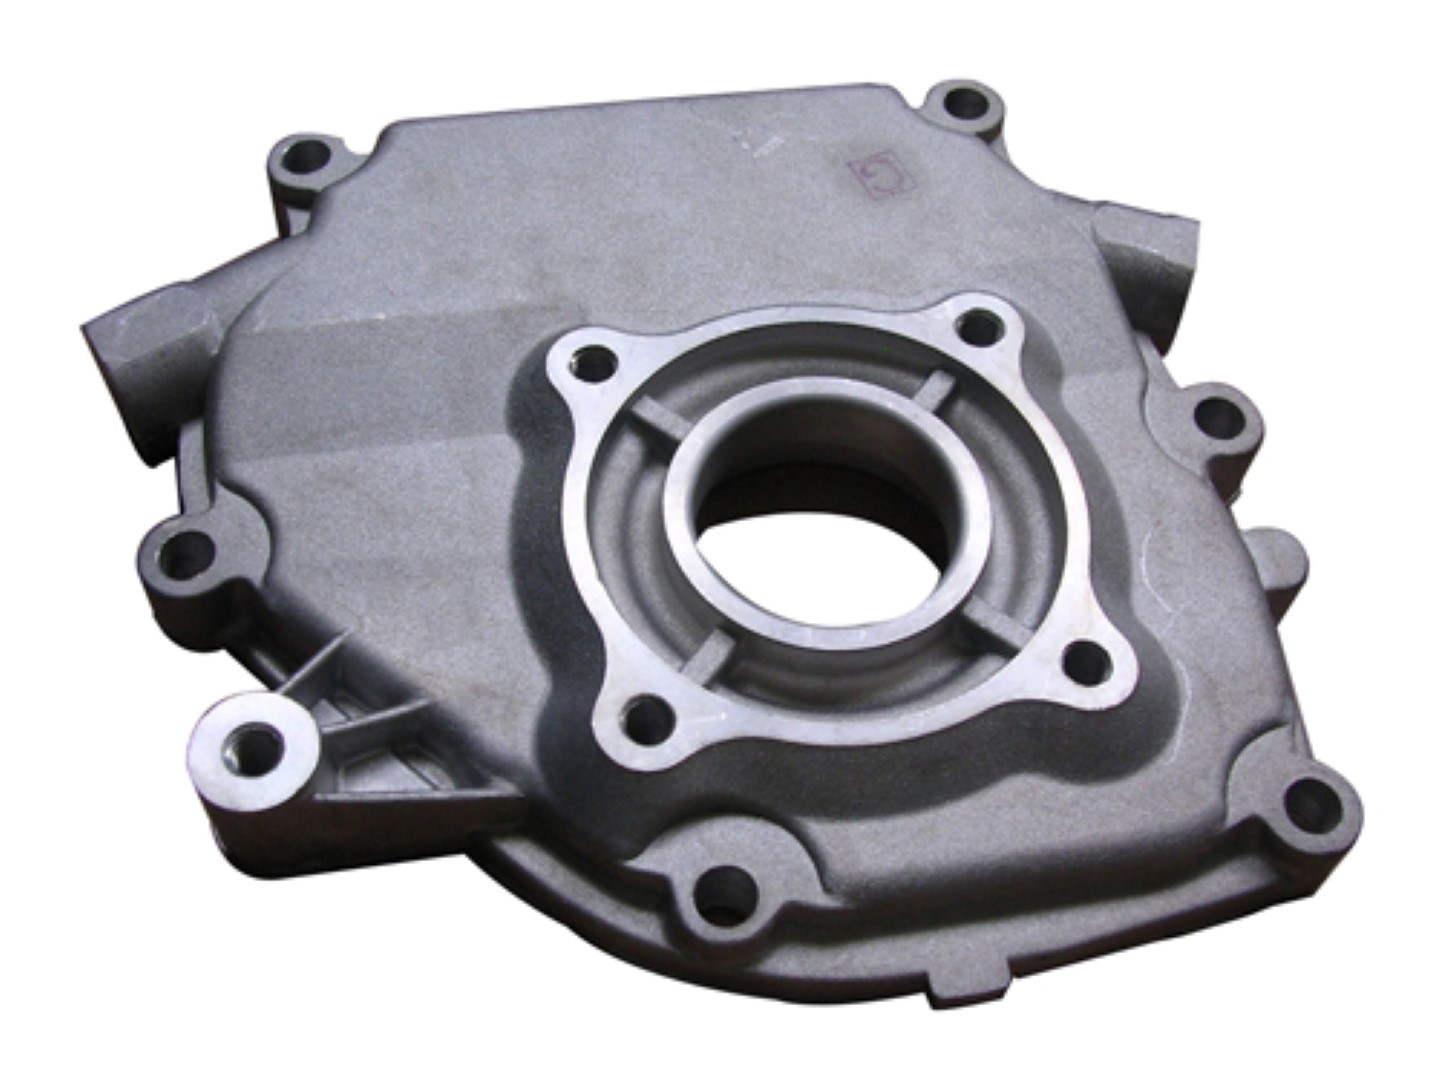 Proven Part GX240 GX270 Crank Case Cover